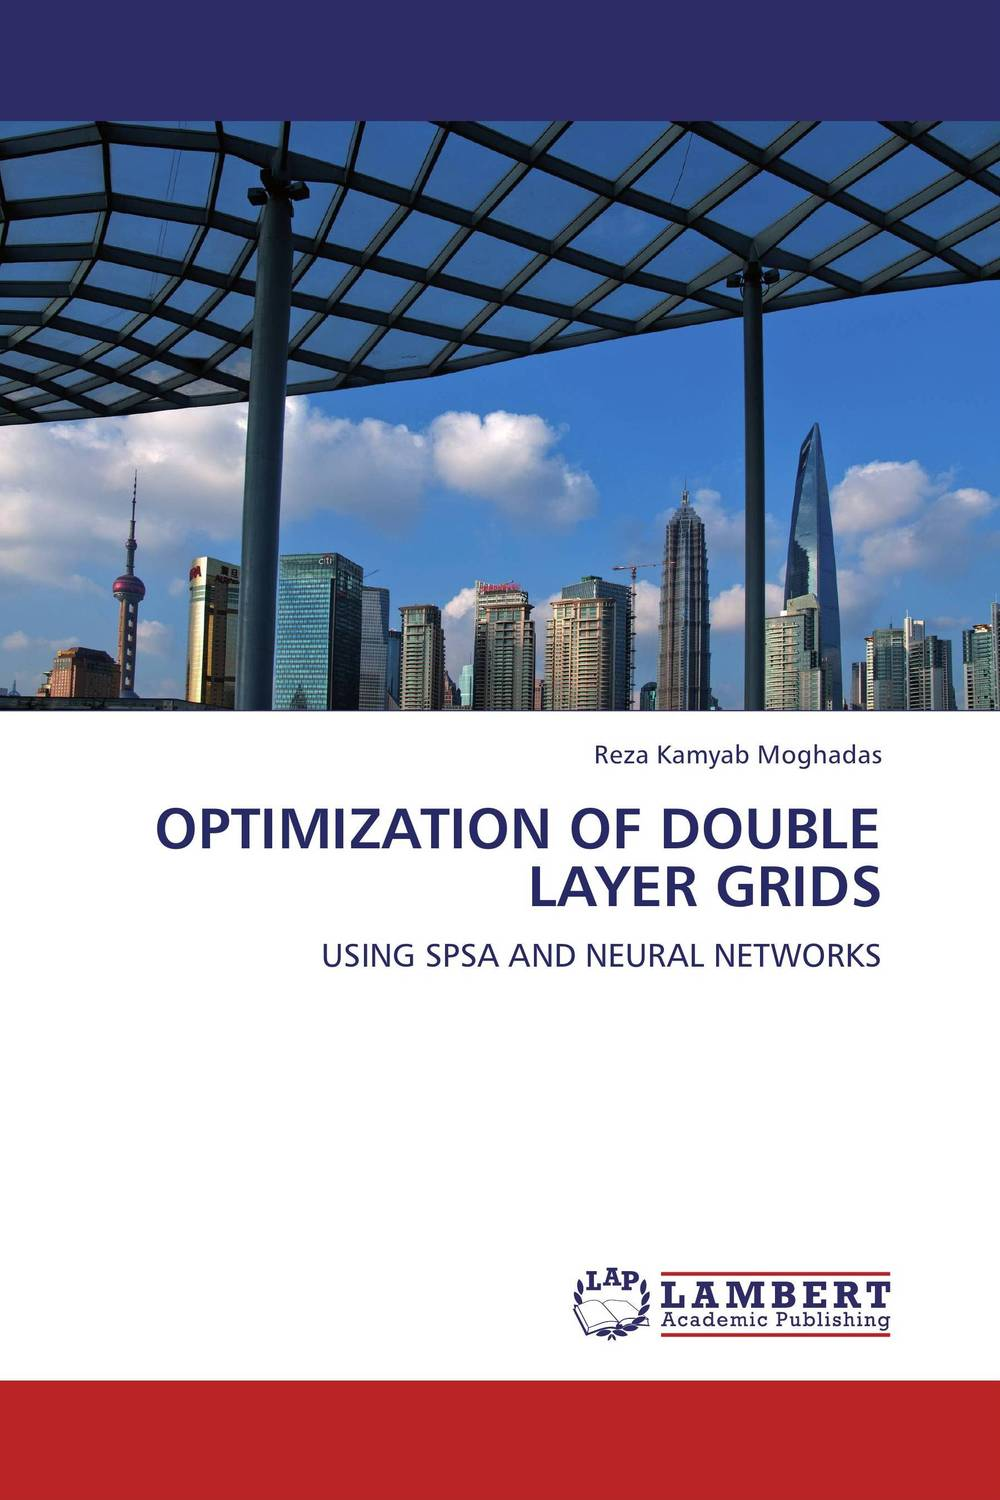 OPTIMIZATION OF DOUBLE LAYER GRIDS benefit analysis of optimization models for network recovery design